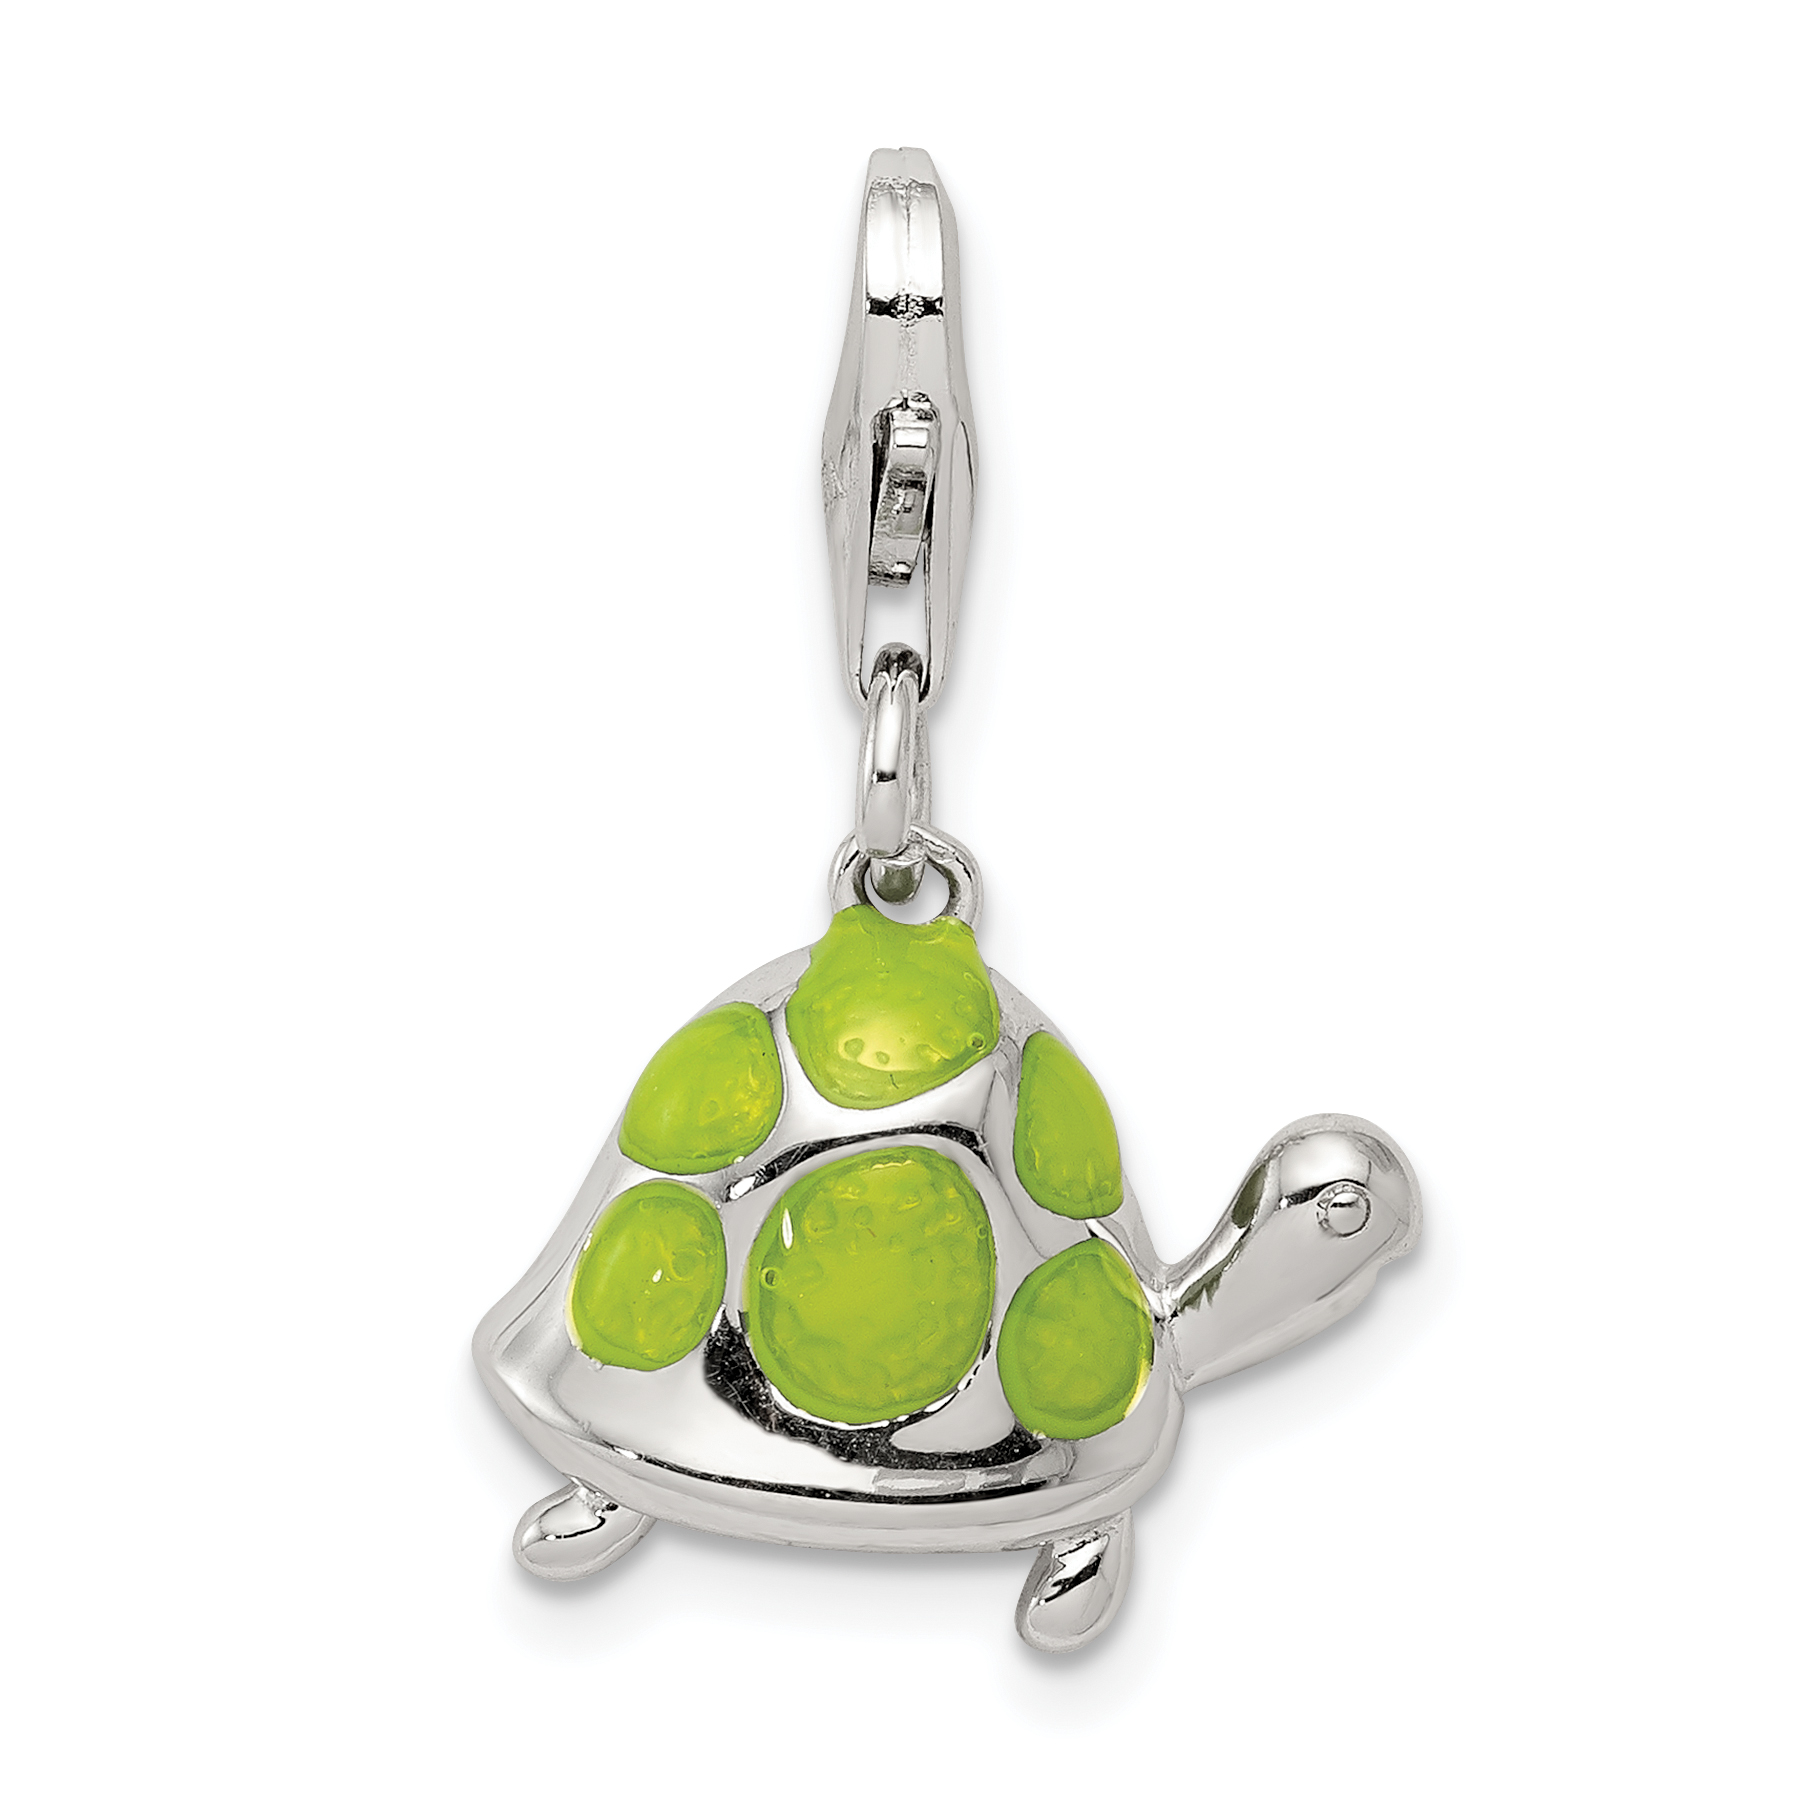 925 Sterling Silver Green Enameled Turtle Pendant Charm Necklace Sea Life Animal Snake Reptile Fine Jewelry Gifts For Women For Her - image 2 de 2